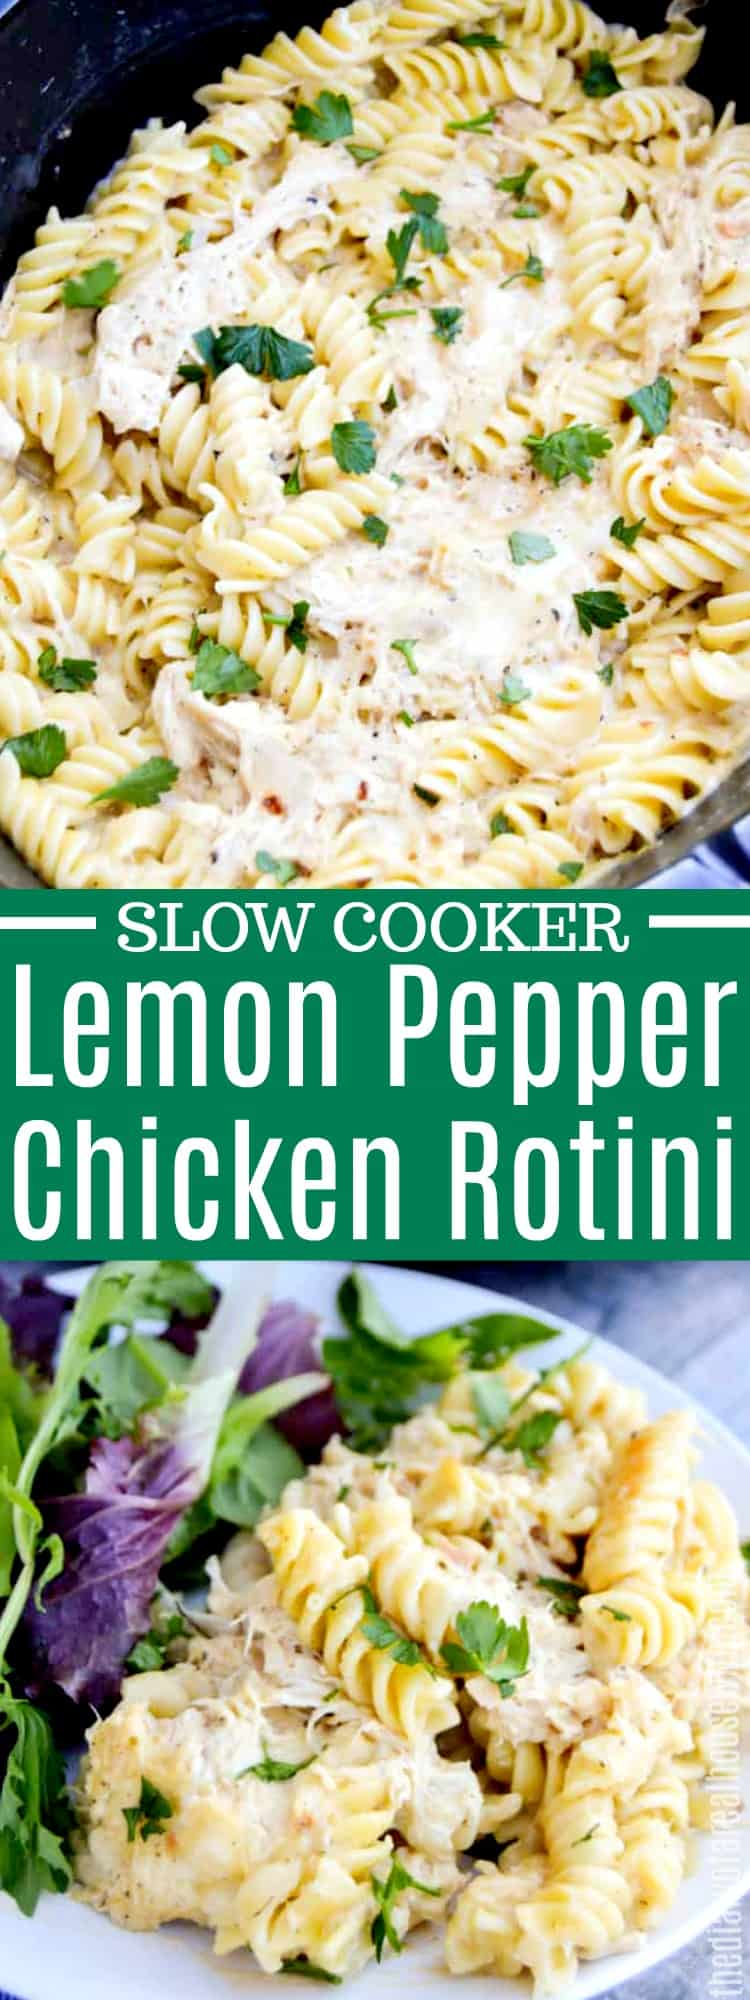 Slow Cooker Lemon Pepper Chicken and Rotini